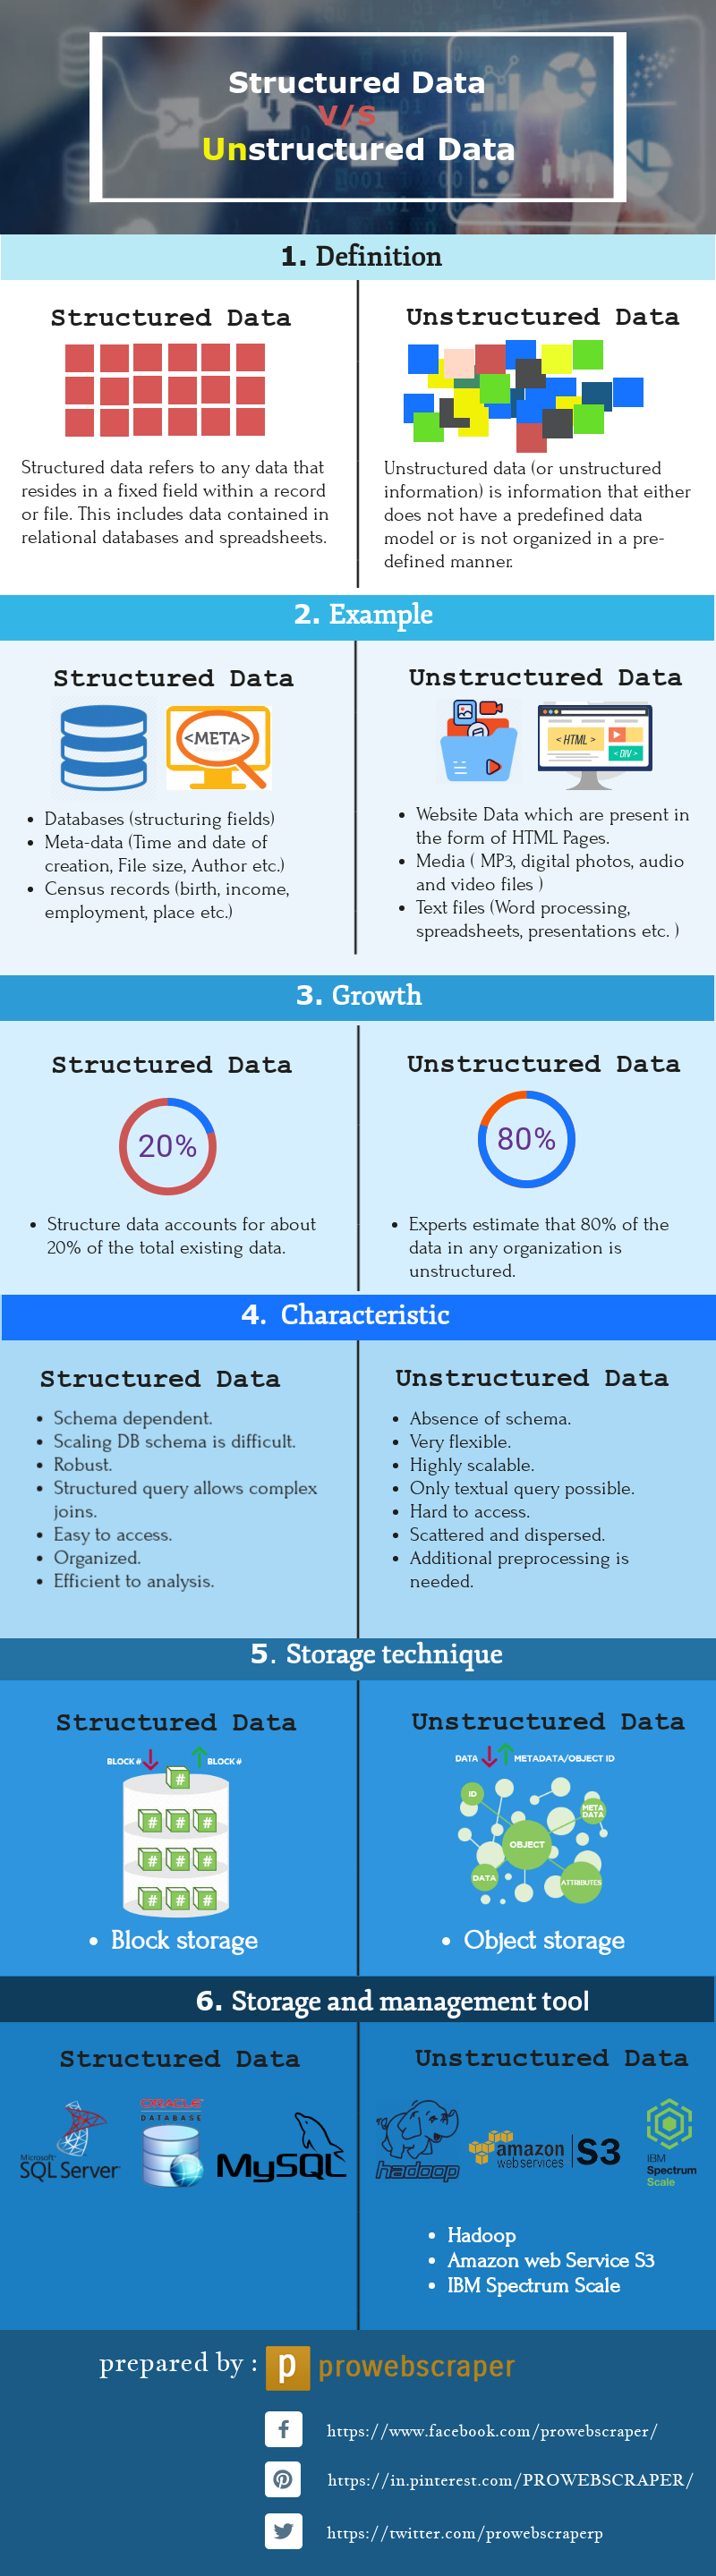 Structured-vs-Unstructured Data